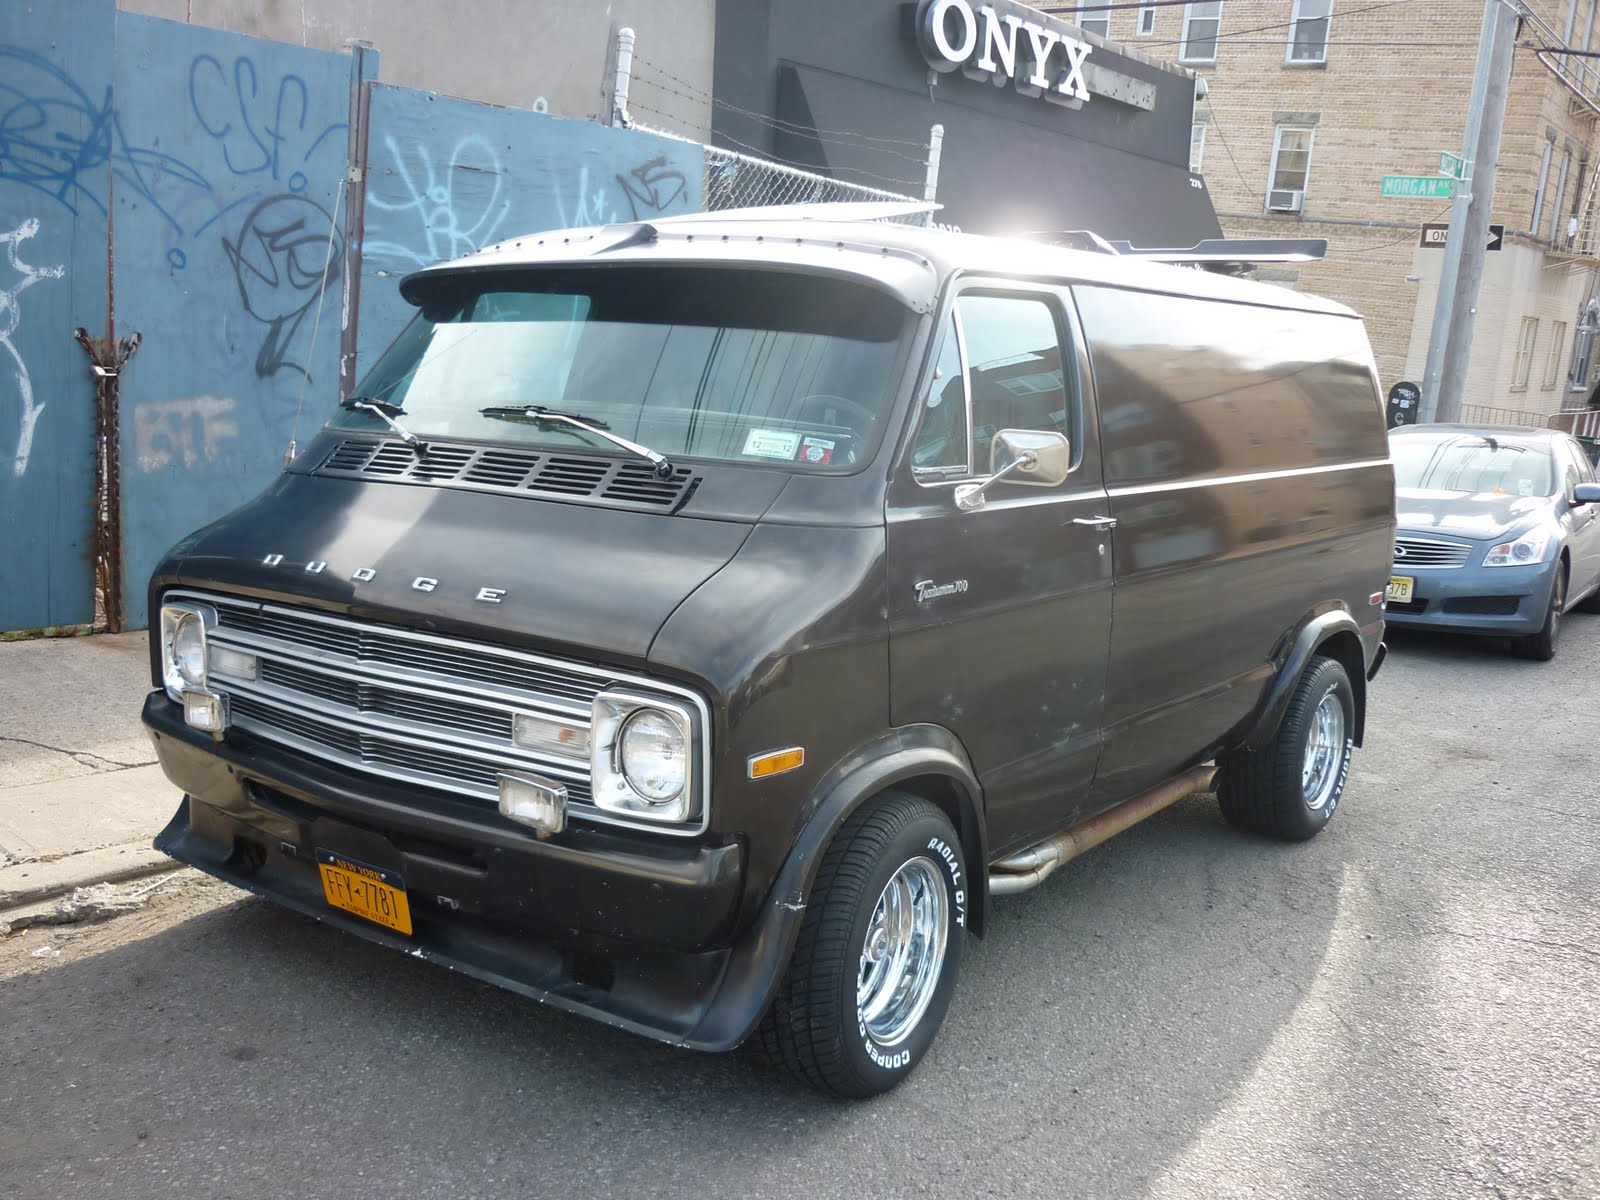 Looking To Sell Or Trade My 1977 Dodge on 1977 dodge van custom